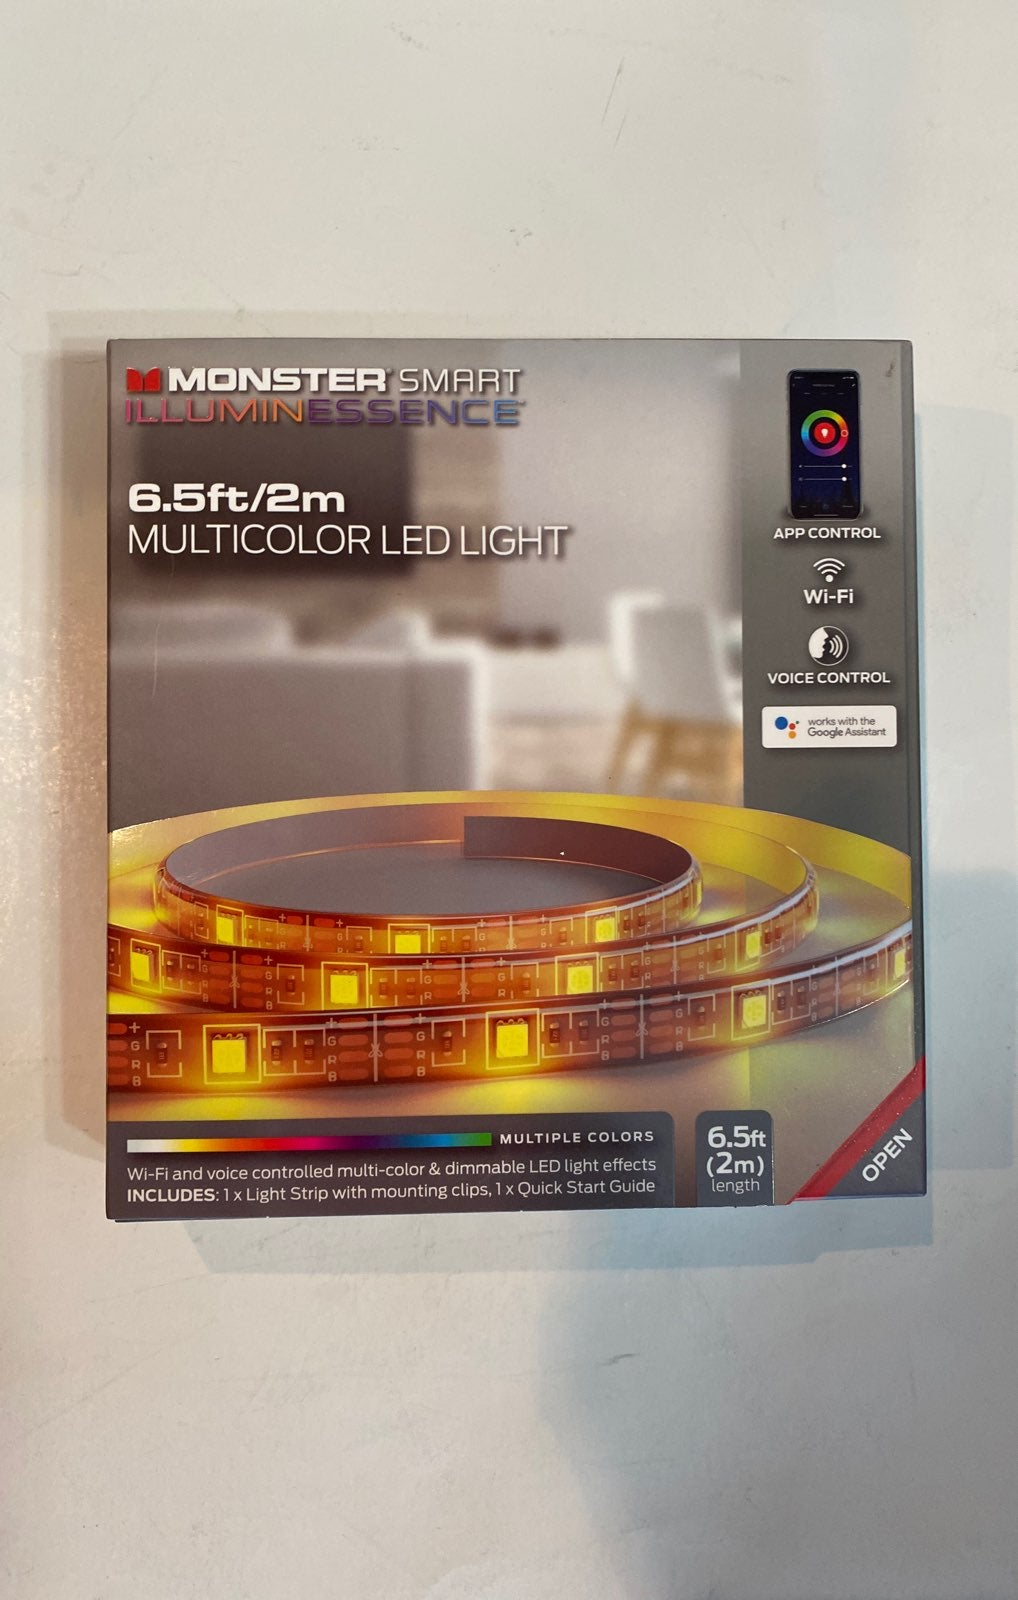 Monster Smart Multicolor LED light 6.5ft